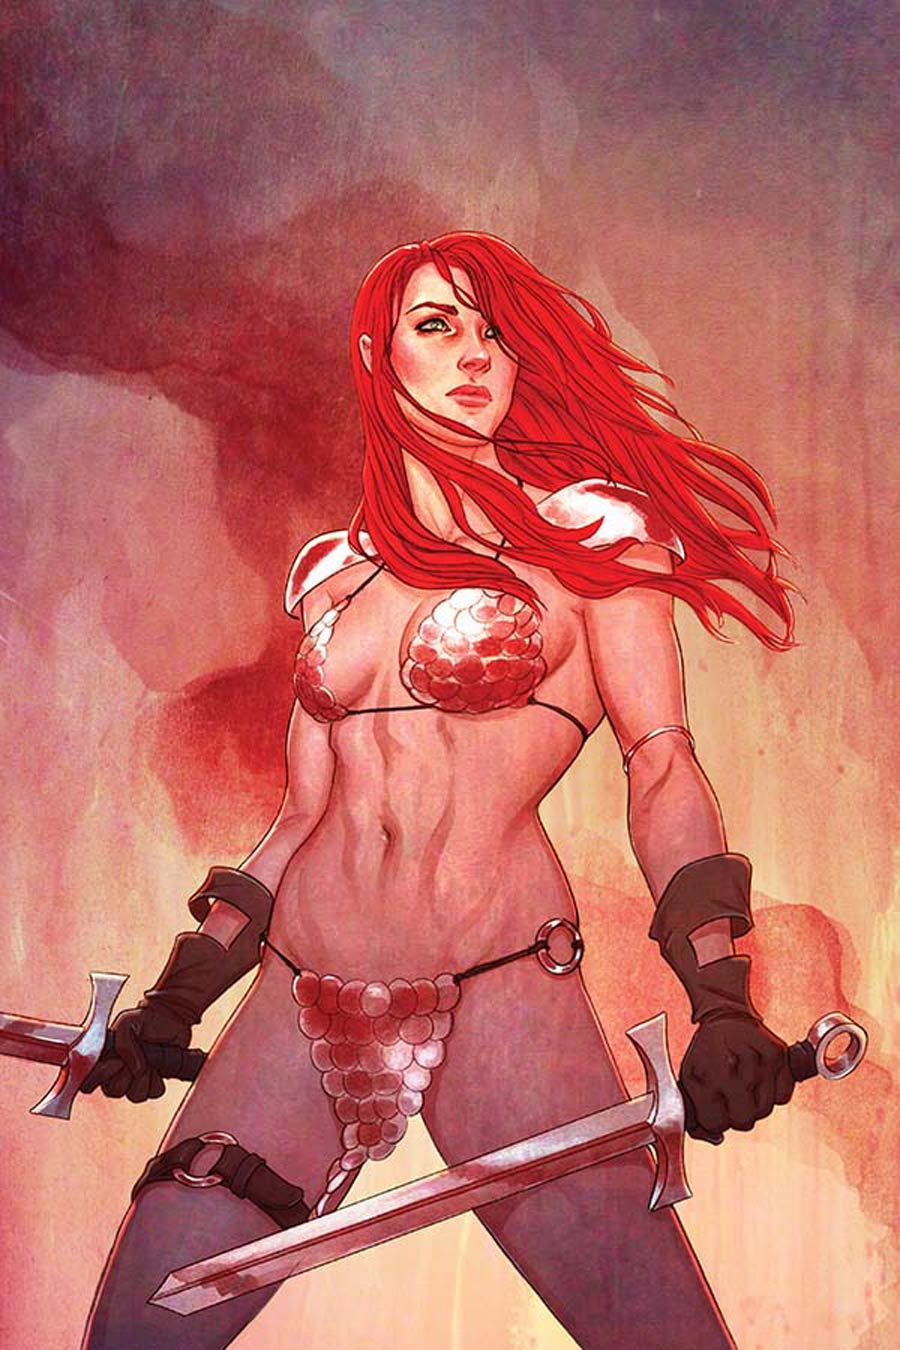 Red Sonja Vol 5 #16 Cover F High-End Jenny Frison Virgin Art Ultra-Limited Variant Cover (ONLY 50 COPIES IN EXISTENCE!)